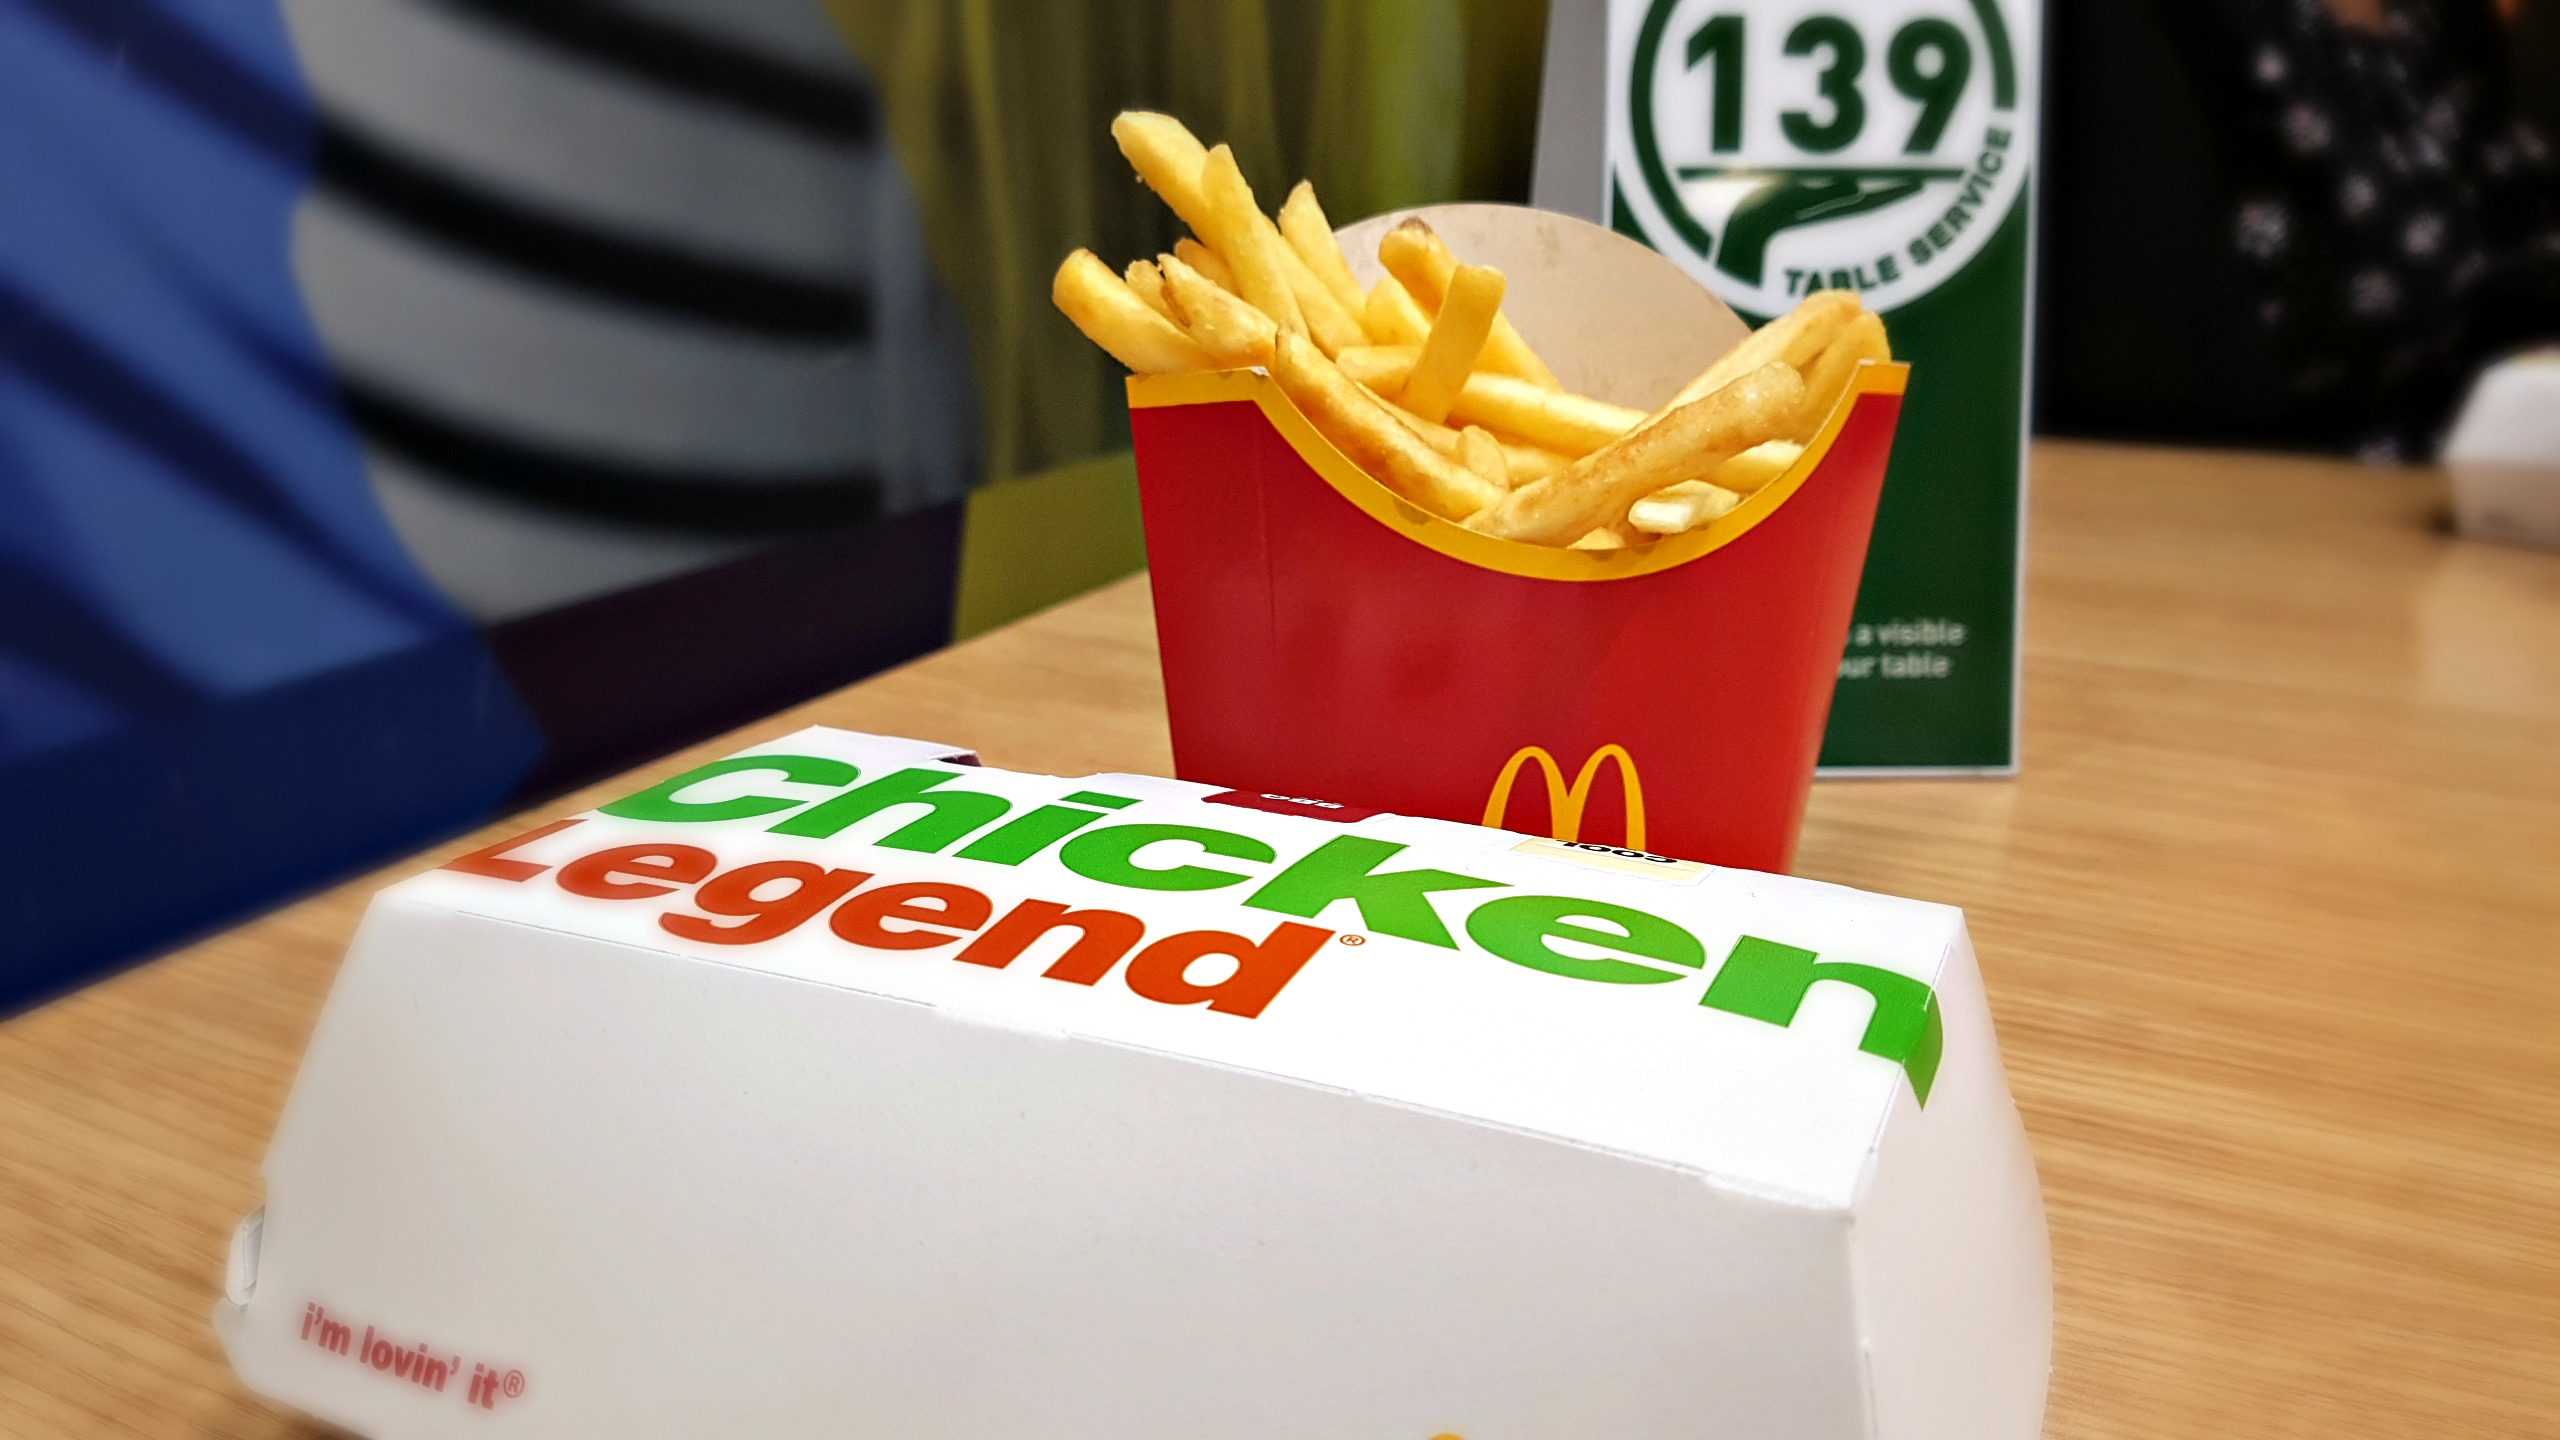 image of a mcdonald's click and collect app order of fries and a closed boxed chicken legend with a table number in the background